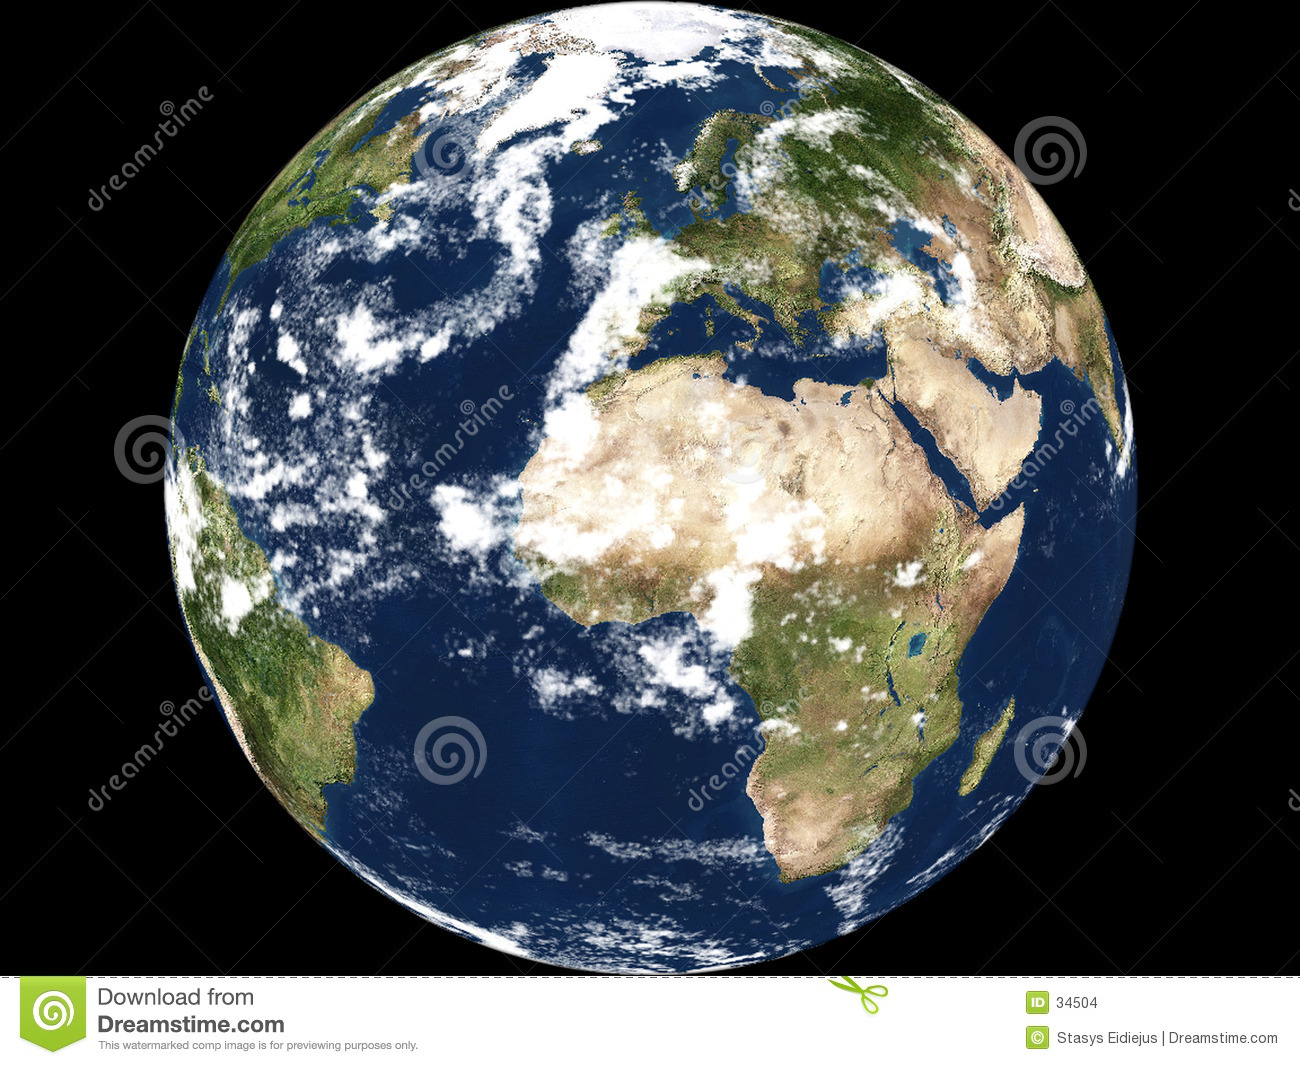 real pictures of earth the planet - photo #41